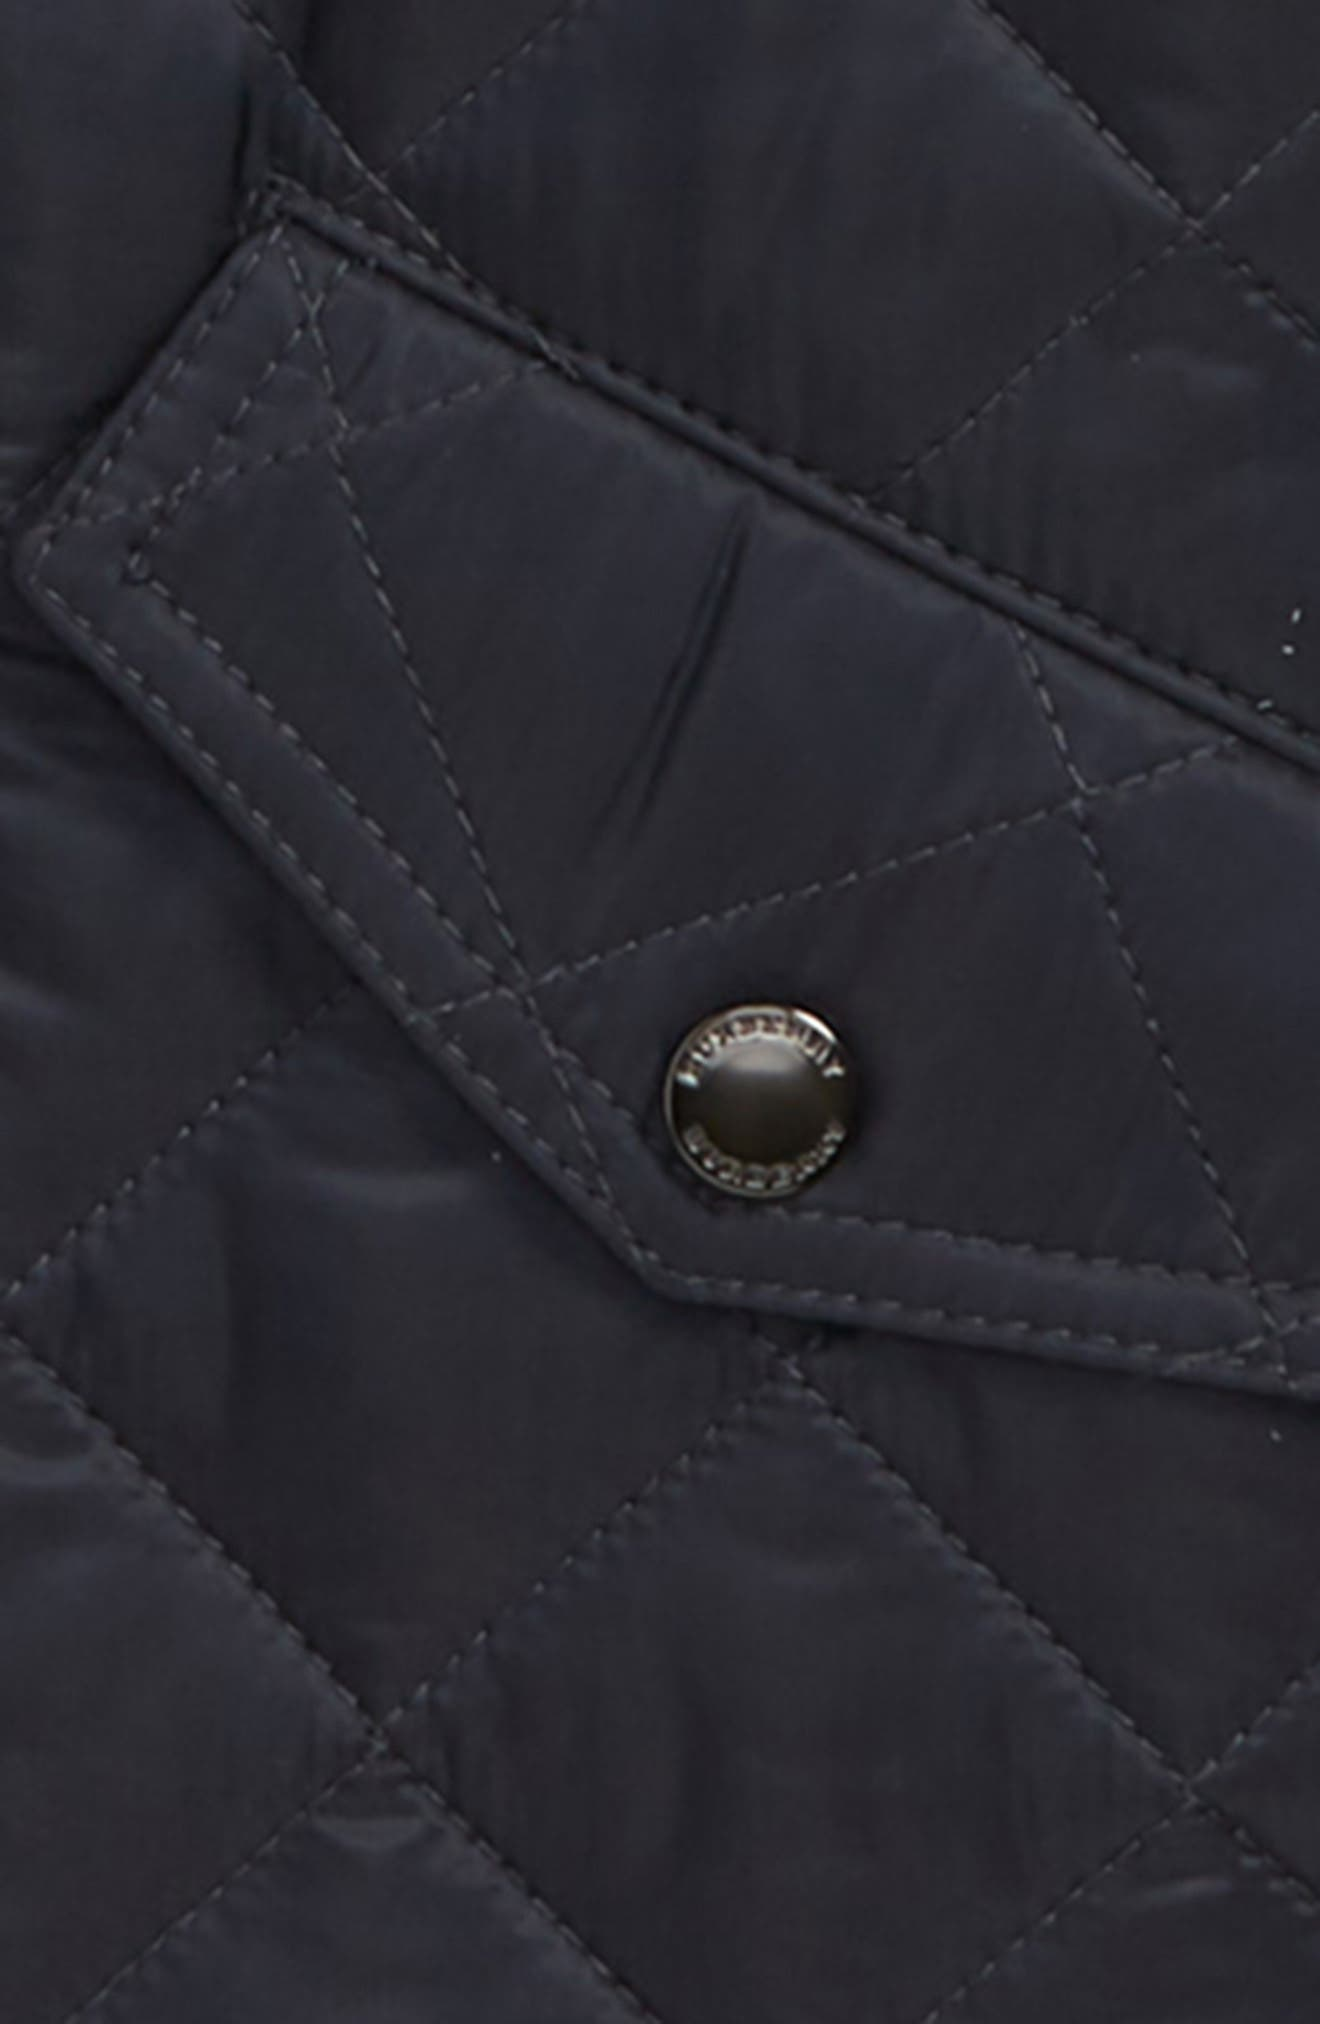 BURBERRY, Ilana Quilted Water Repellent Jacket, Alternate thumbnail 2, color, BRIGHT NAVY